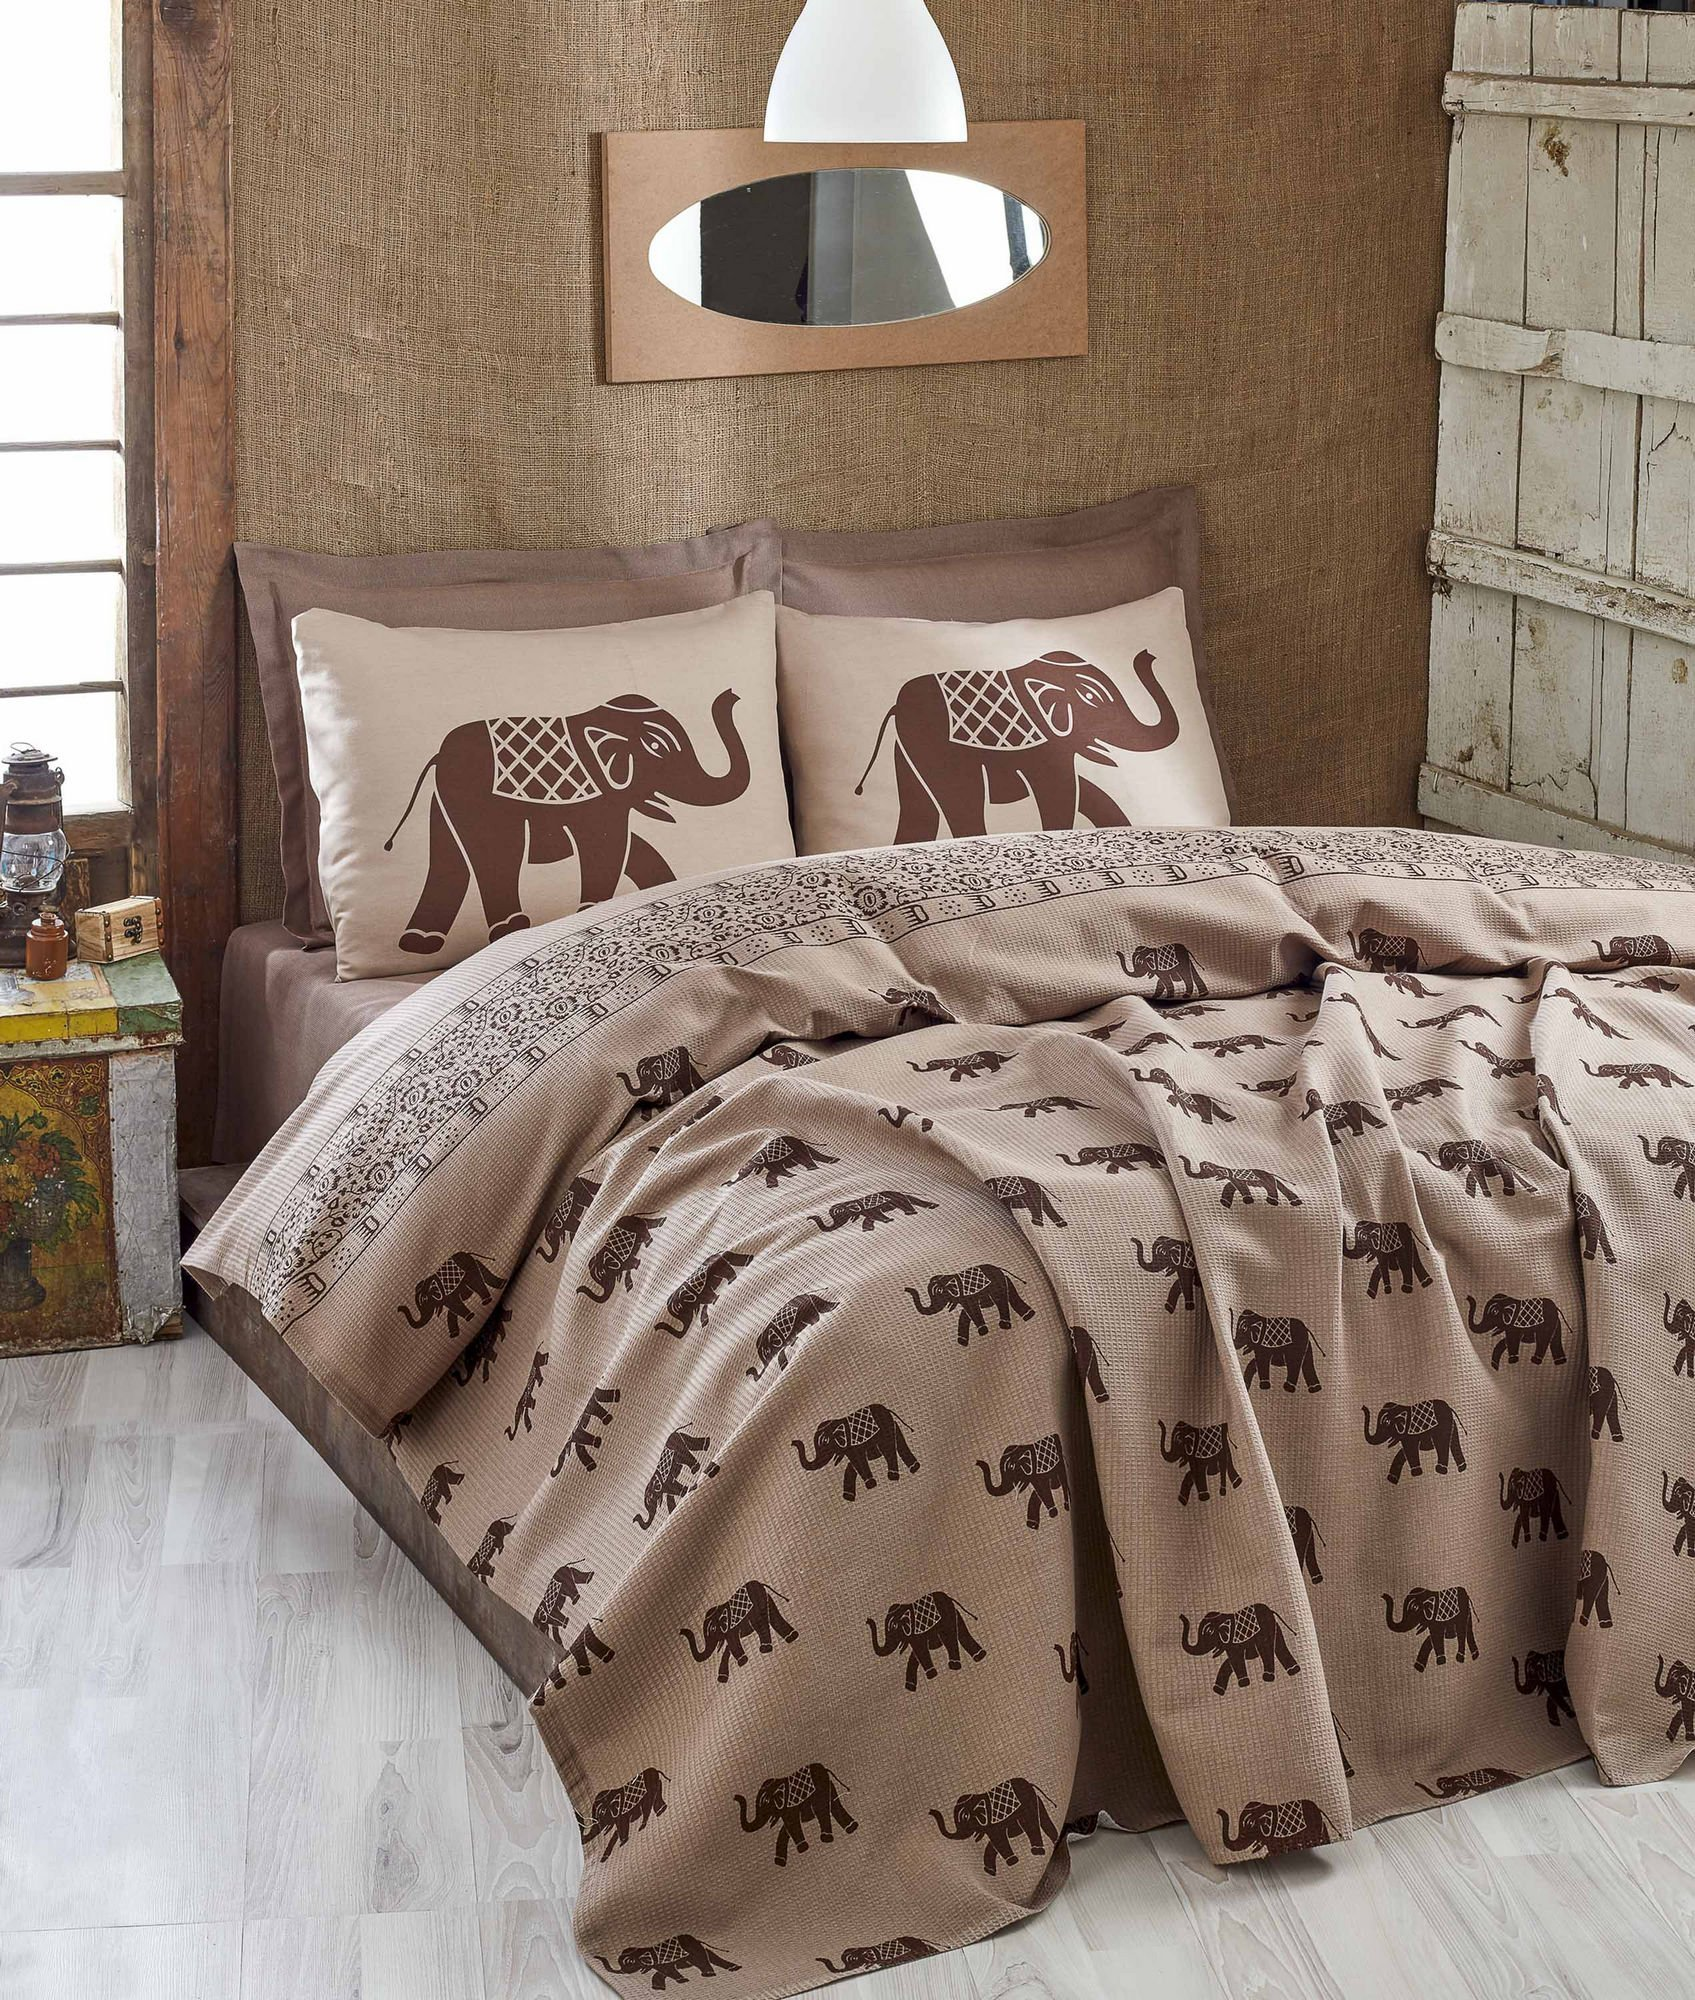 LaModaHome Big Animals Coverlet, 100% Cotton - Elephant with Saddle in The Back, Modern, Brown - Size (78.7'' x 92.5'') Use in The Summer, Thin Coverlet (Pique) for Full and Double Bed